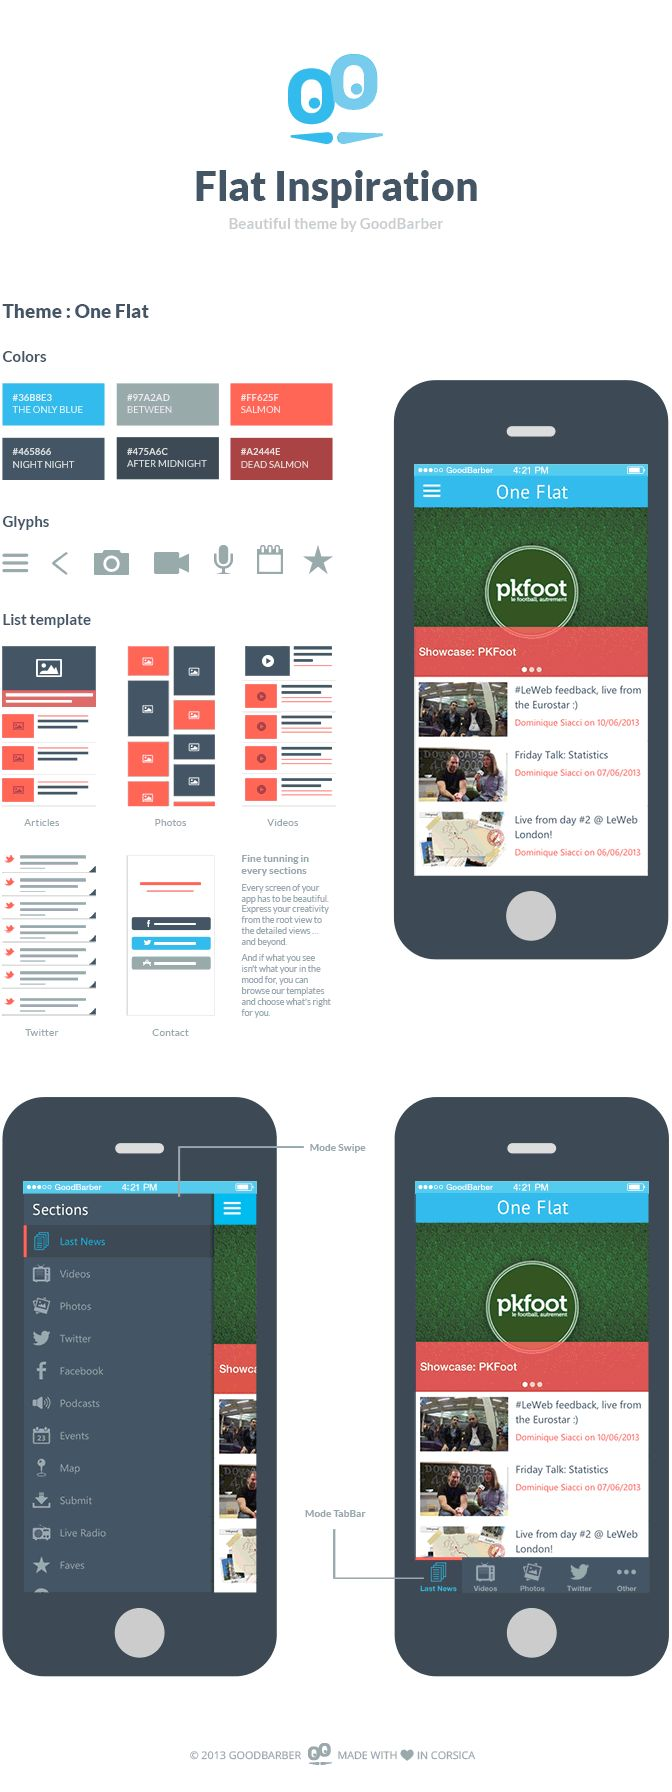 The One Flat Theme - Beautiful Apps by GoodBarber  #template #mobileapp #mobiledev #iOS #Android #design #flat